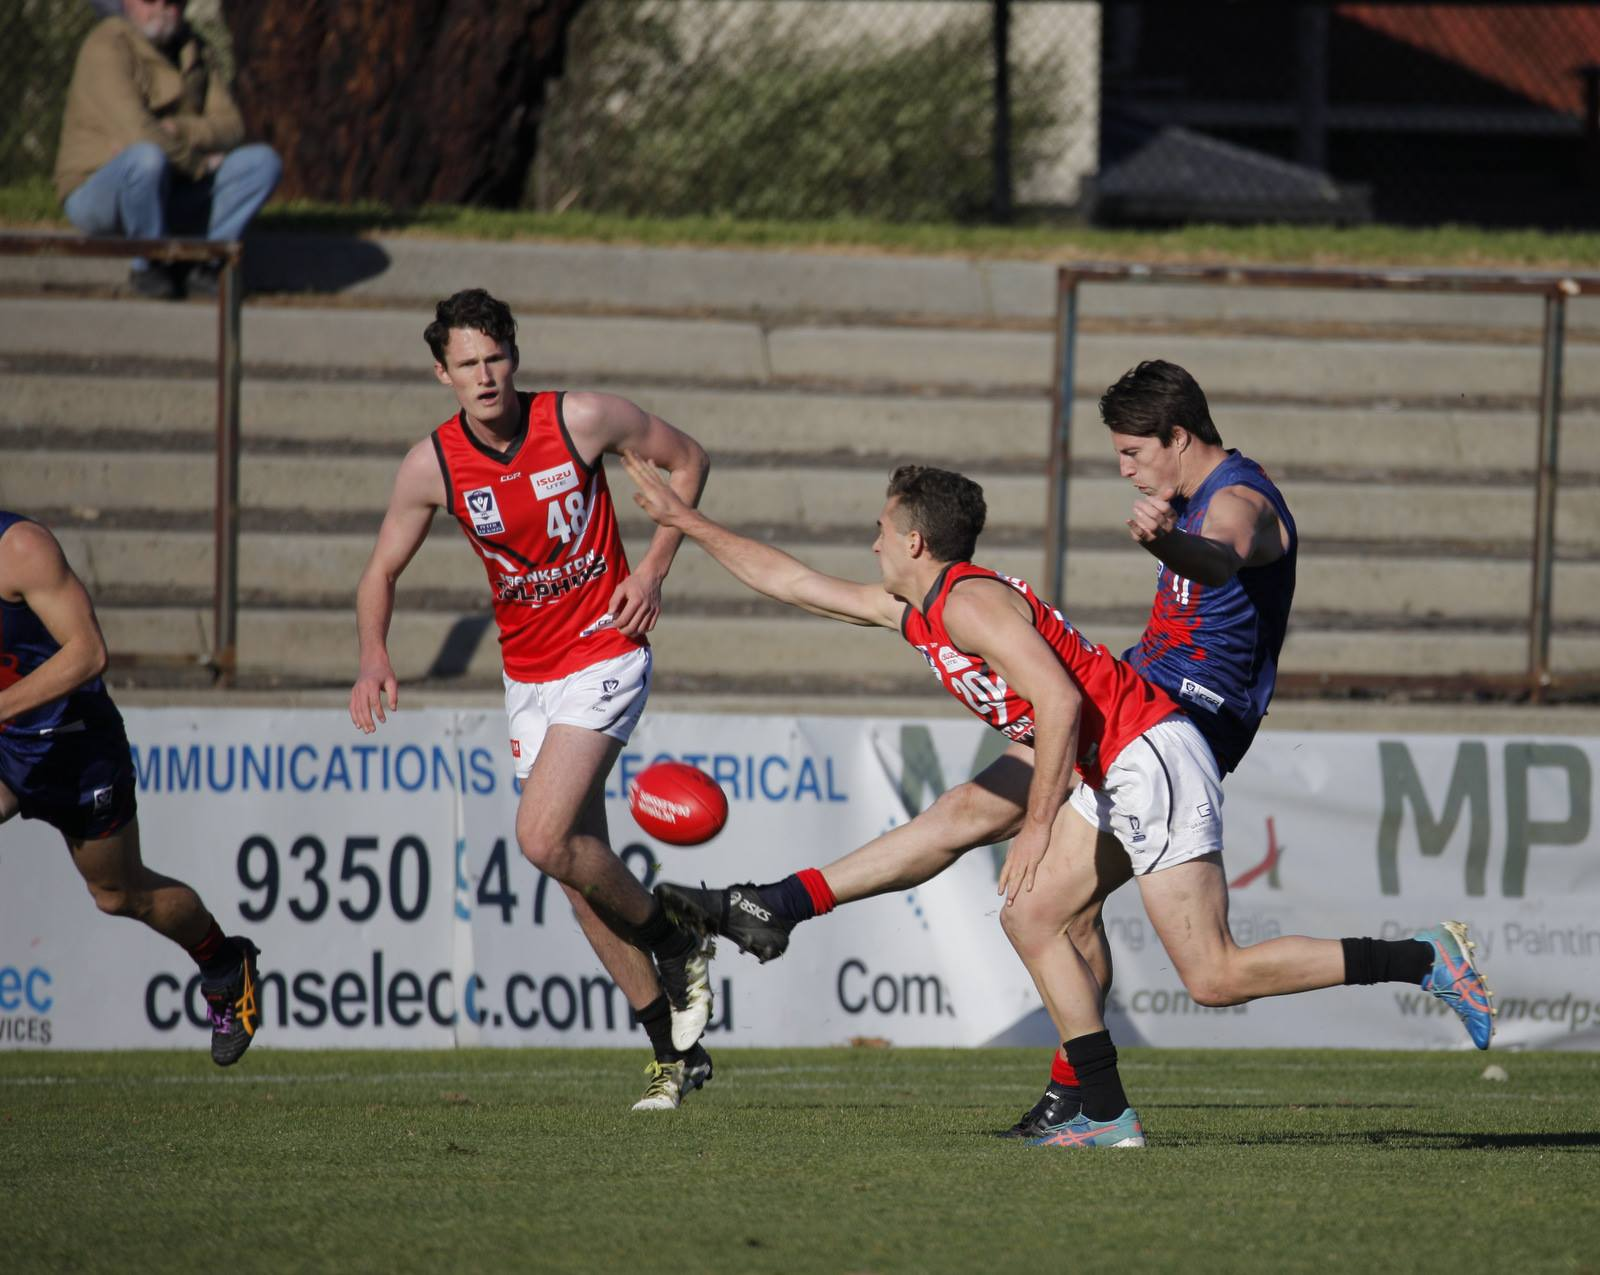 f3af322c4aa The Coburg Football Club is pleased with its 2019 Hard Yakka Totally  Workwear VFL fixture which includes a televised Easter Sunday clash against  Frankston